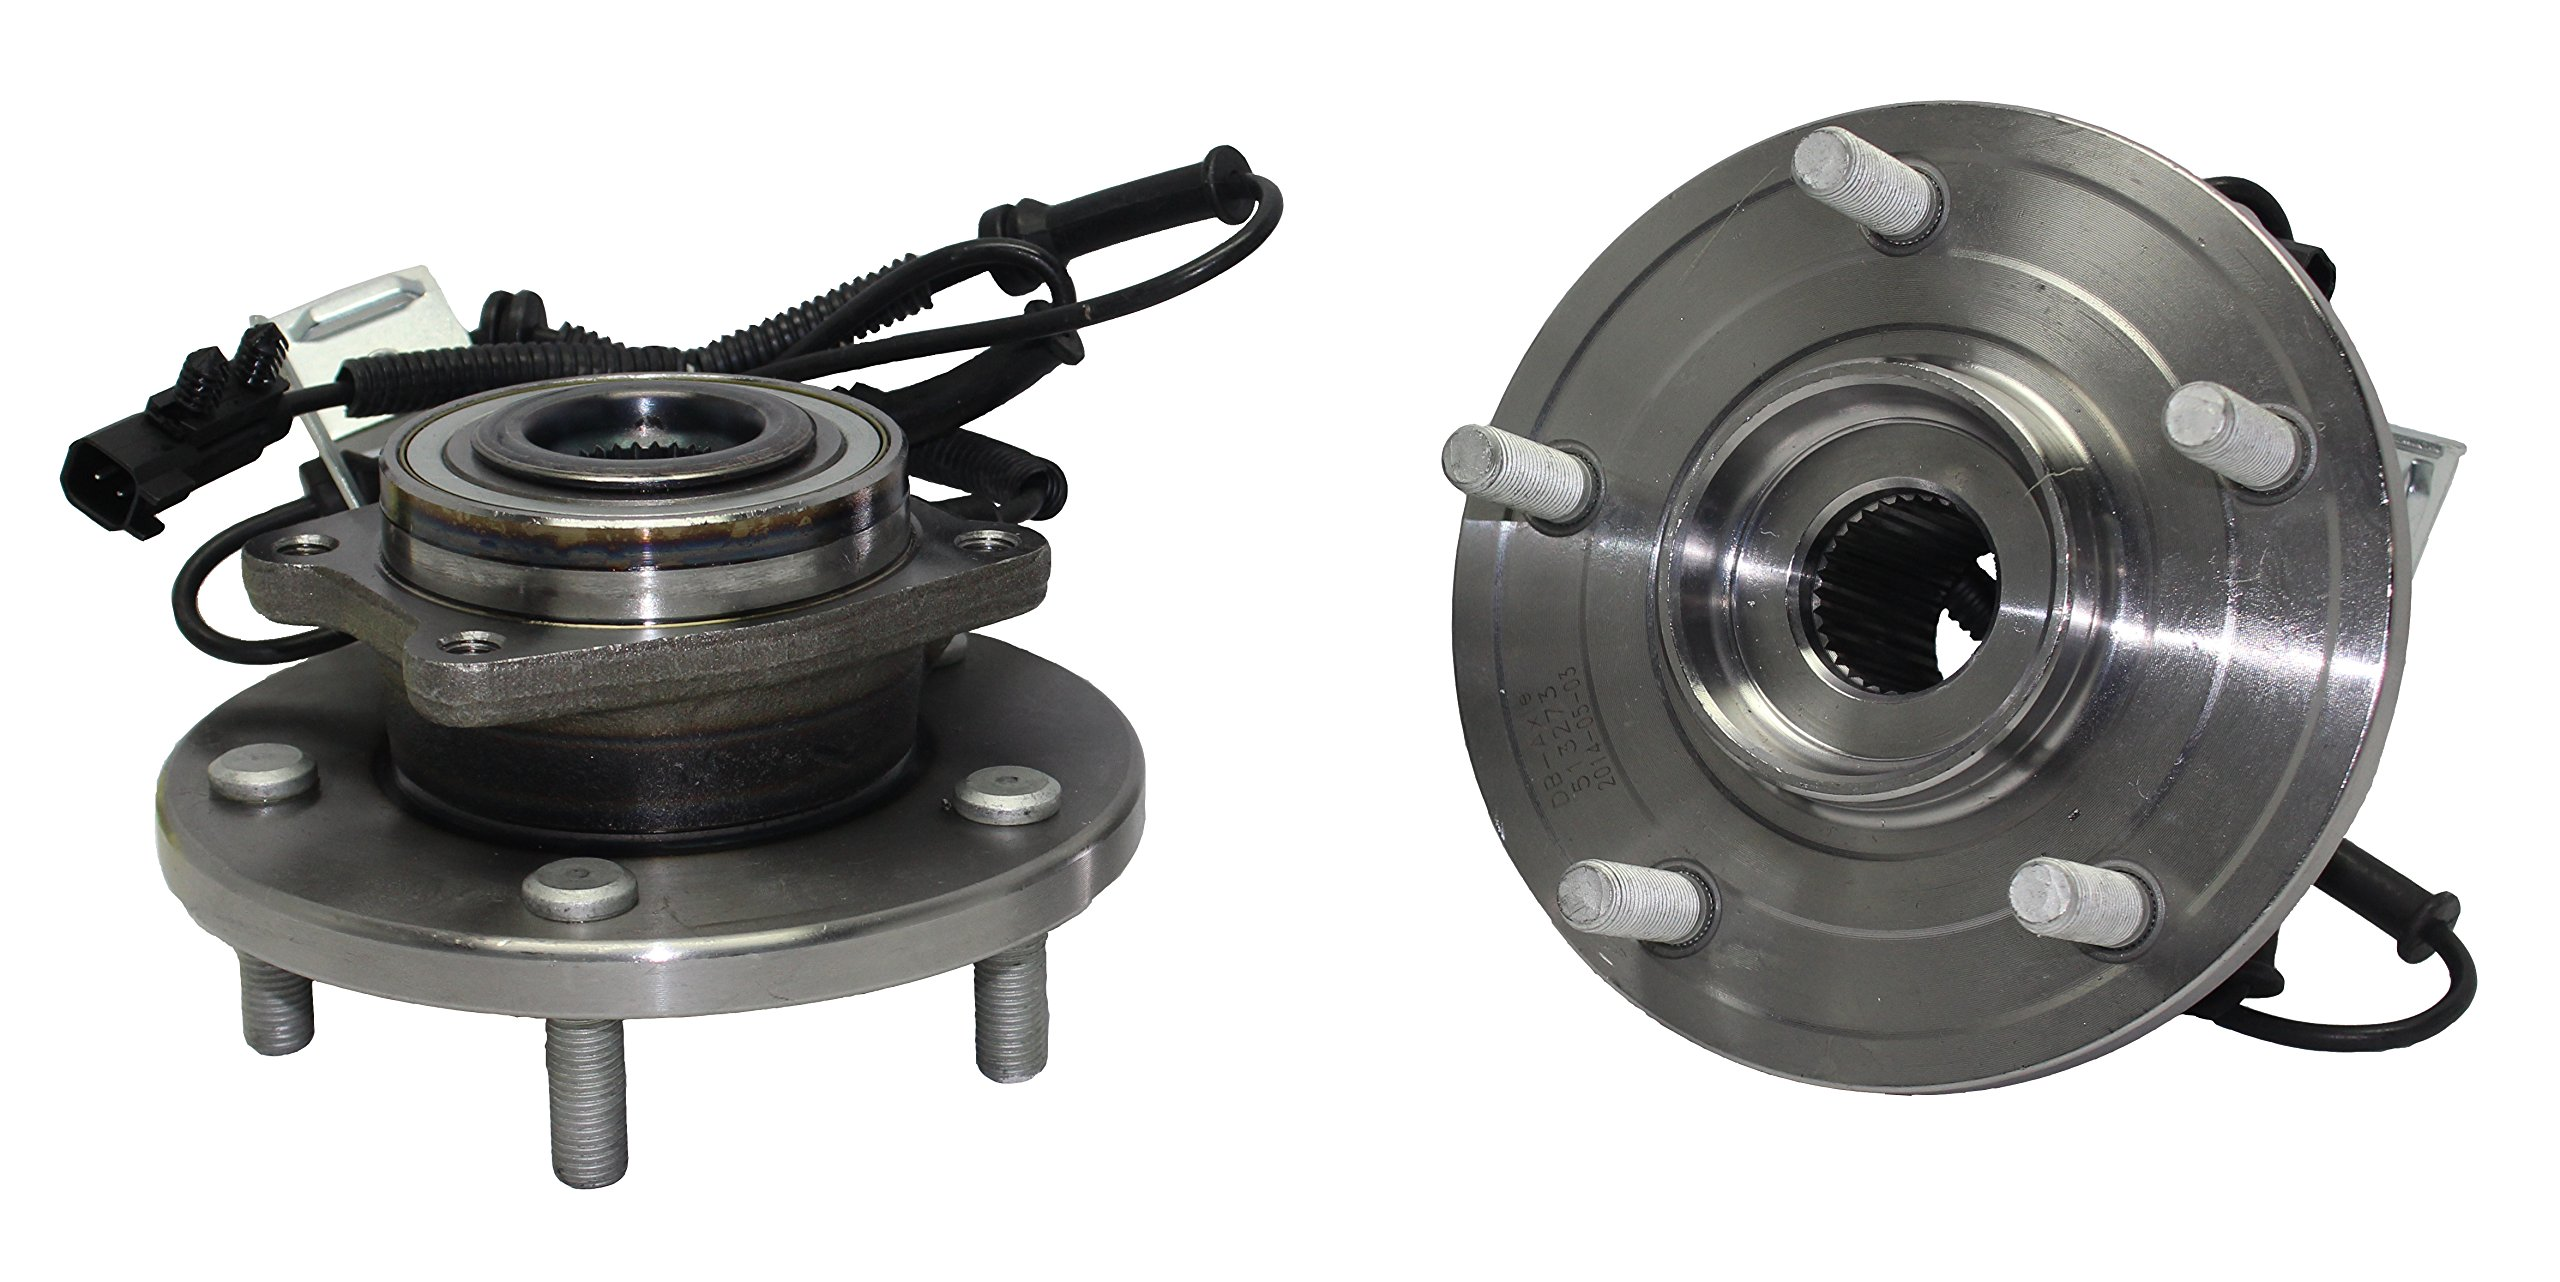 Detroit Axle - New (Both) Front Wheel Hub and Bearing Assembly For - 2008-16 Chrysler Town & Country - [2008-16 Dodge Grand Caravan] - 2012-14 Ram Cargo Van - [2009-12 VW Routan] by Detroit Axle